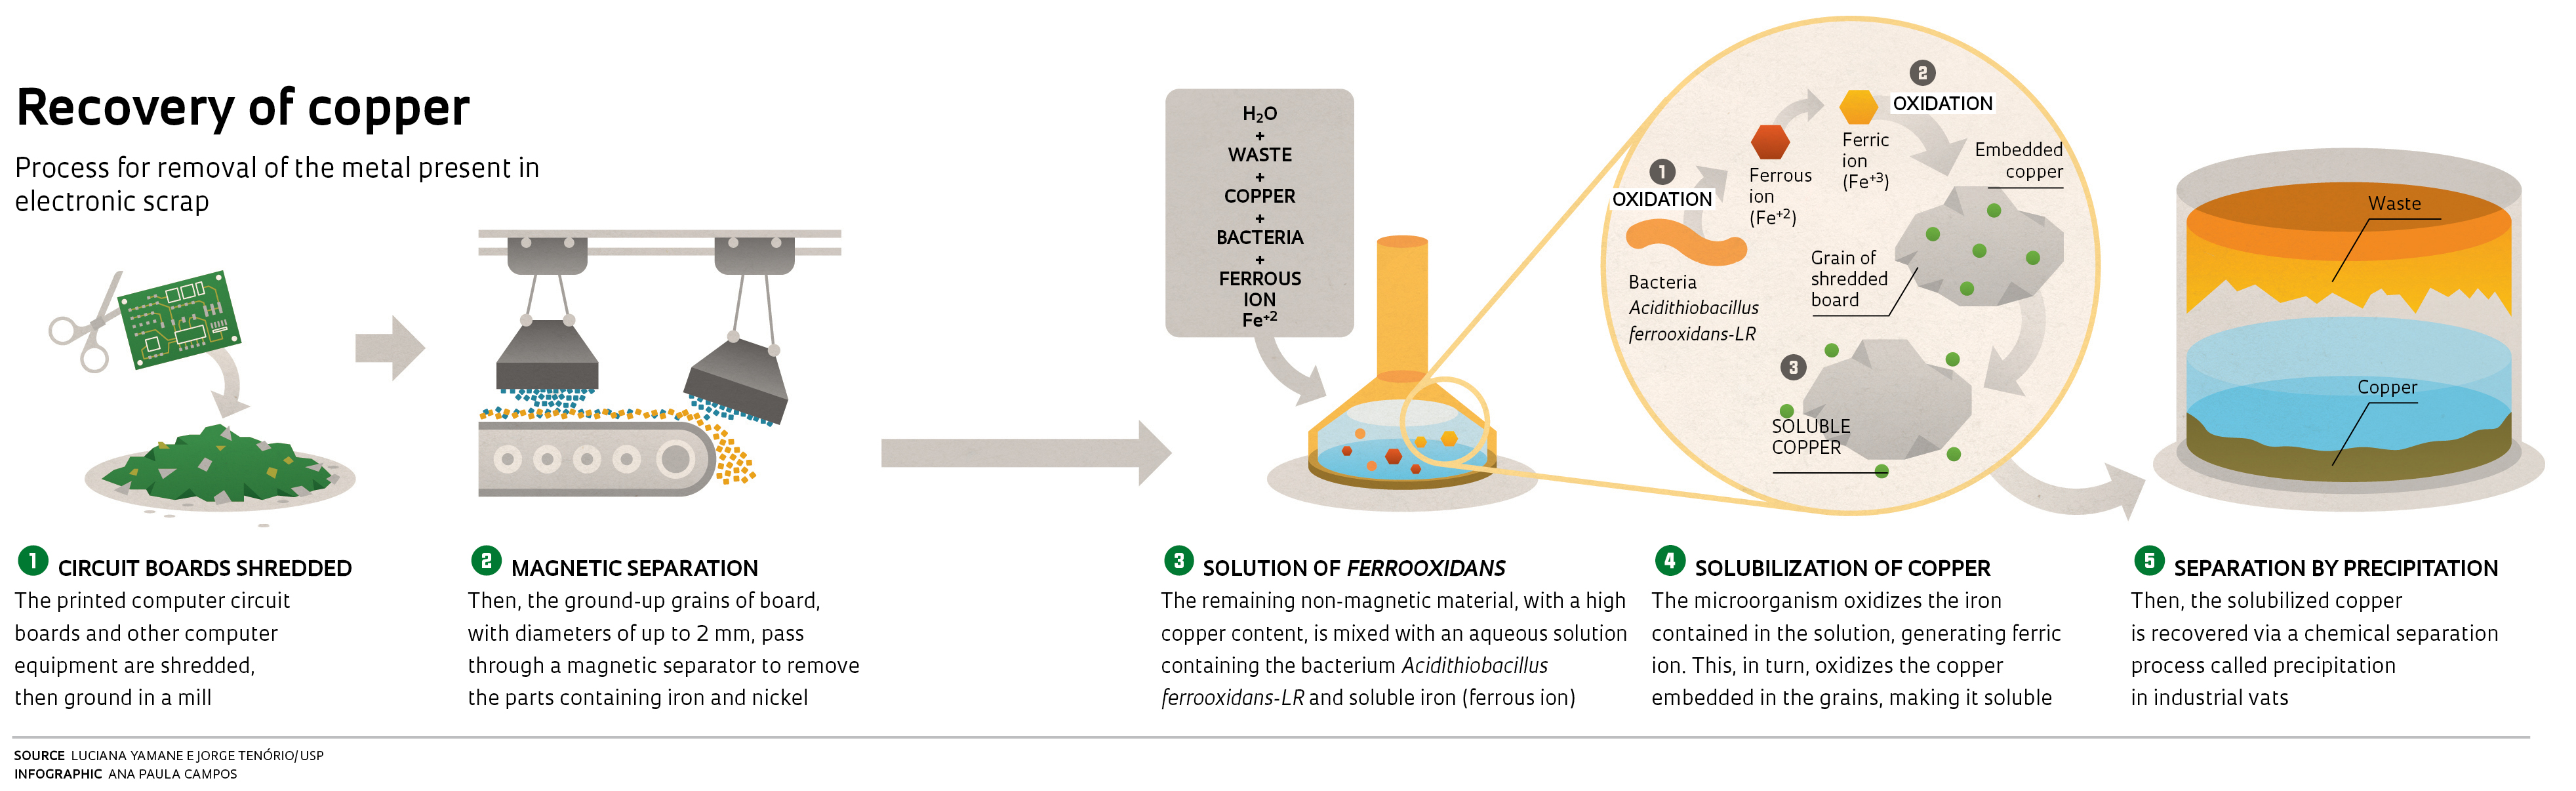 Mining With Microbes Revista Pesquisa Fapesp Of Printed Circuit Board Illustration A Green Yamanes Greatest Challenge Was How To Condition The Microorganisms Whose Natural Habitat Are Rocks Containing Iron Survive And Reproduce In Liquid